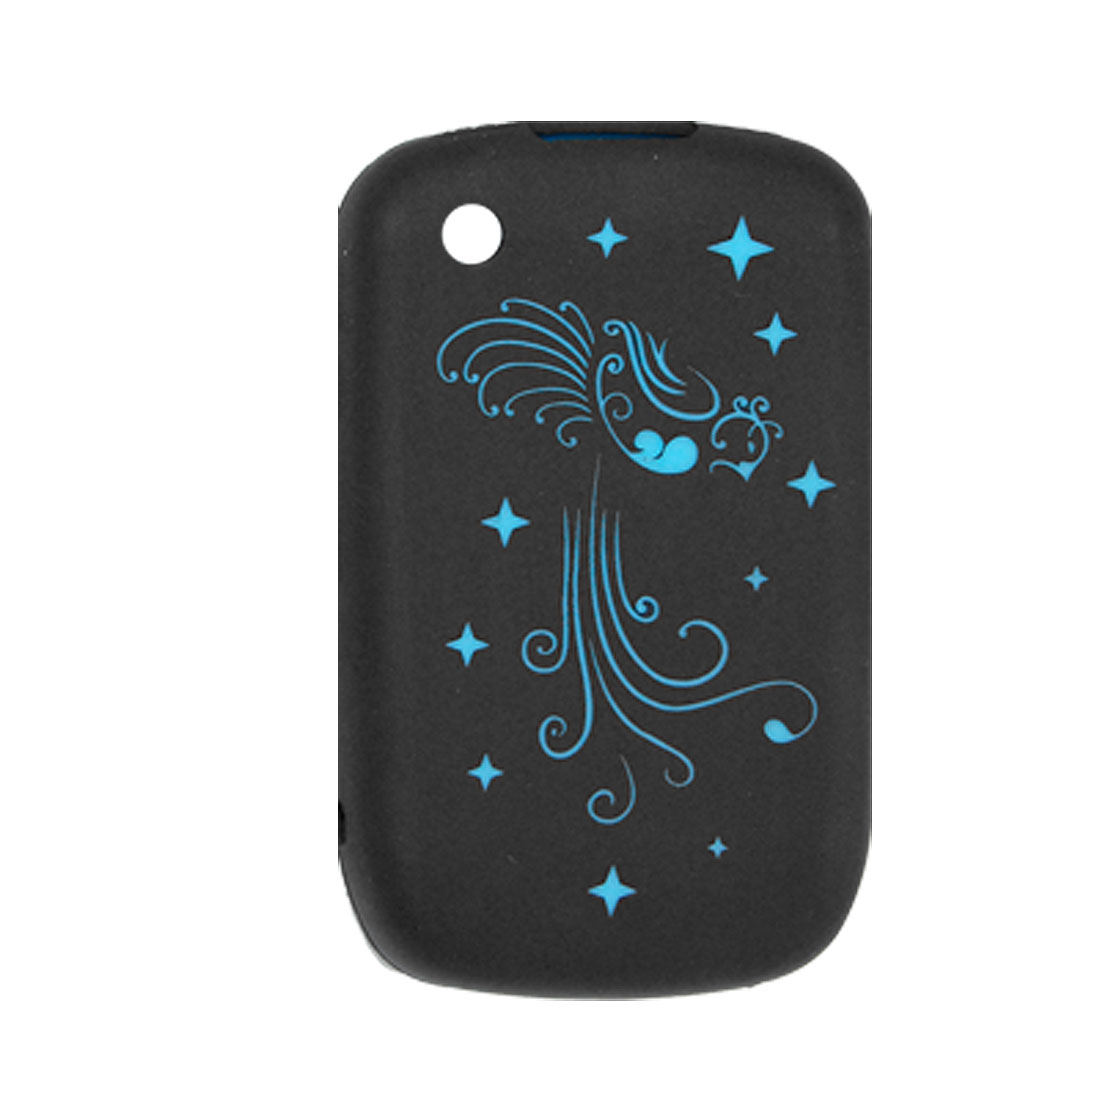 Black Case Blue Star Screen Protective Cover for Blackberry 8520